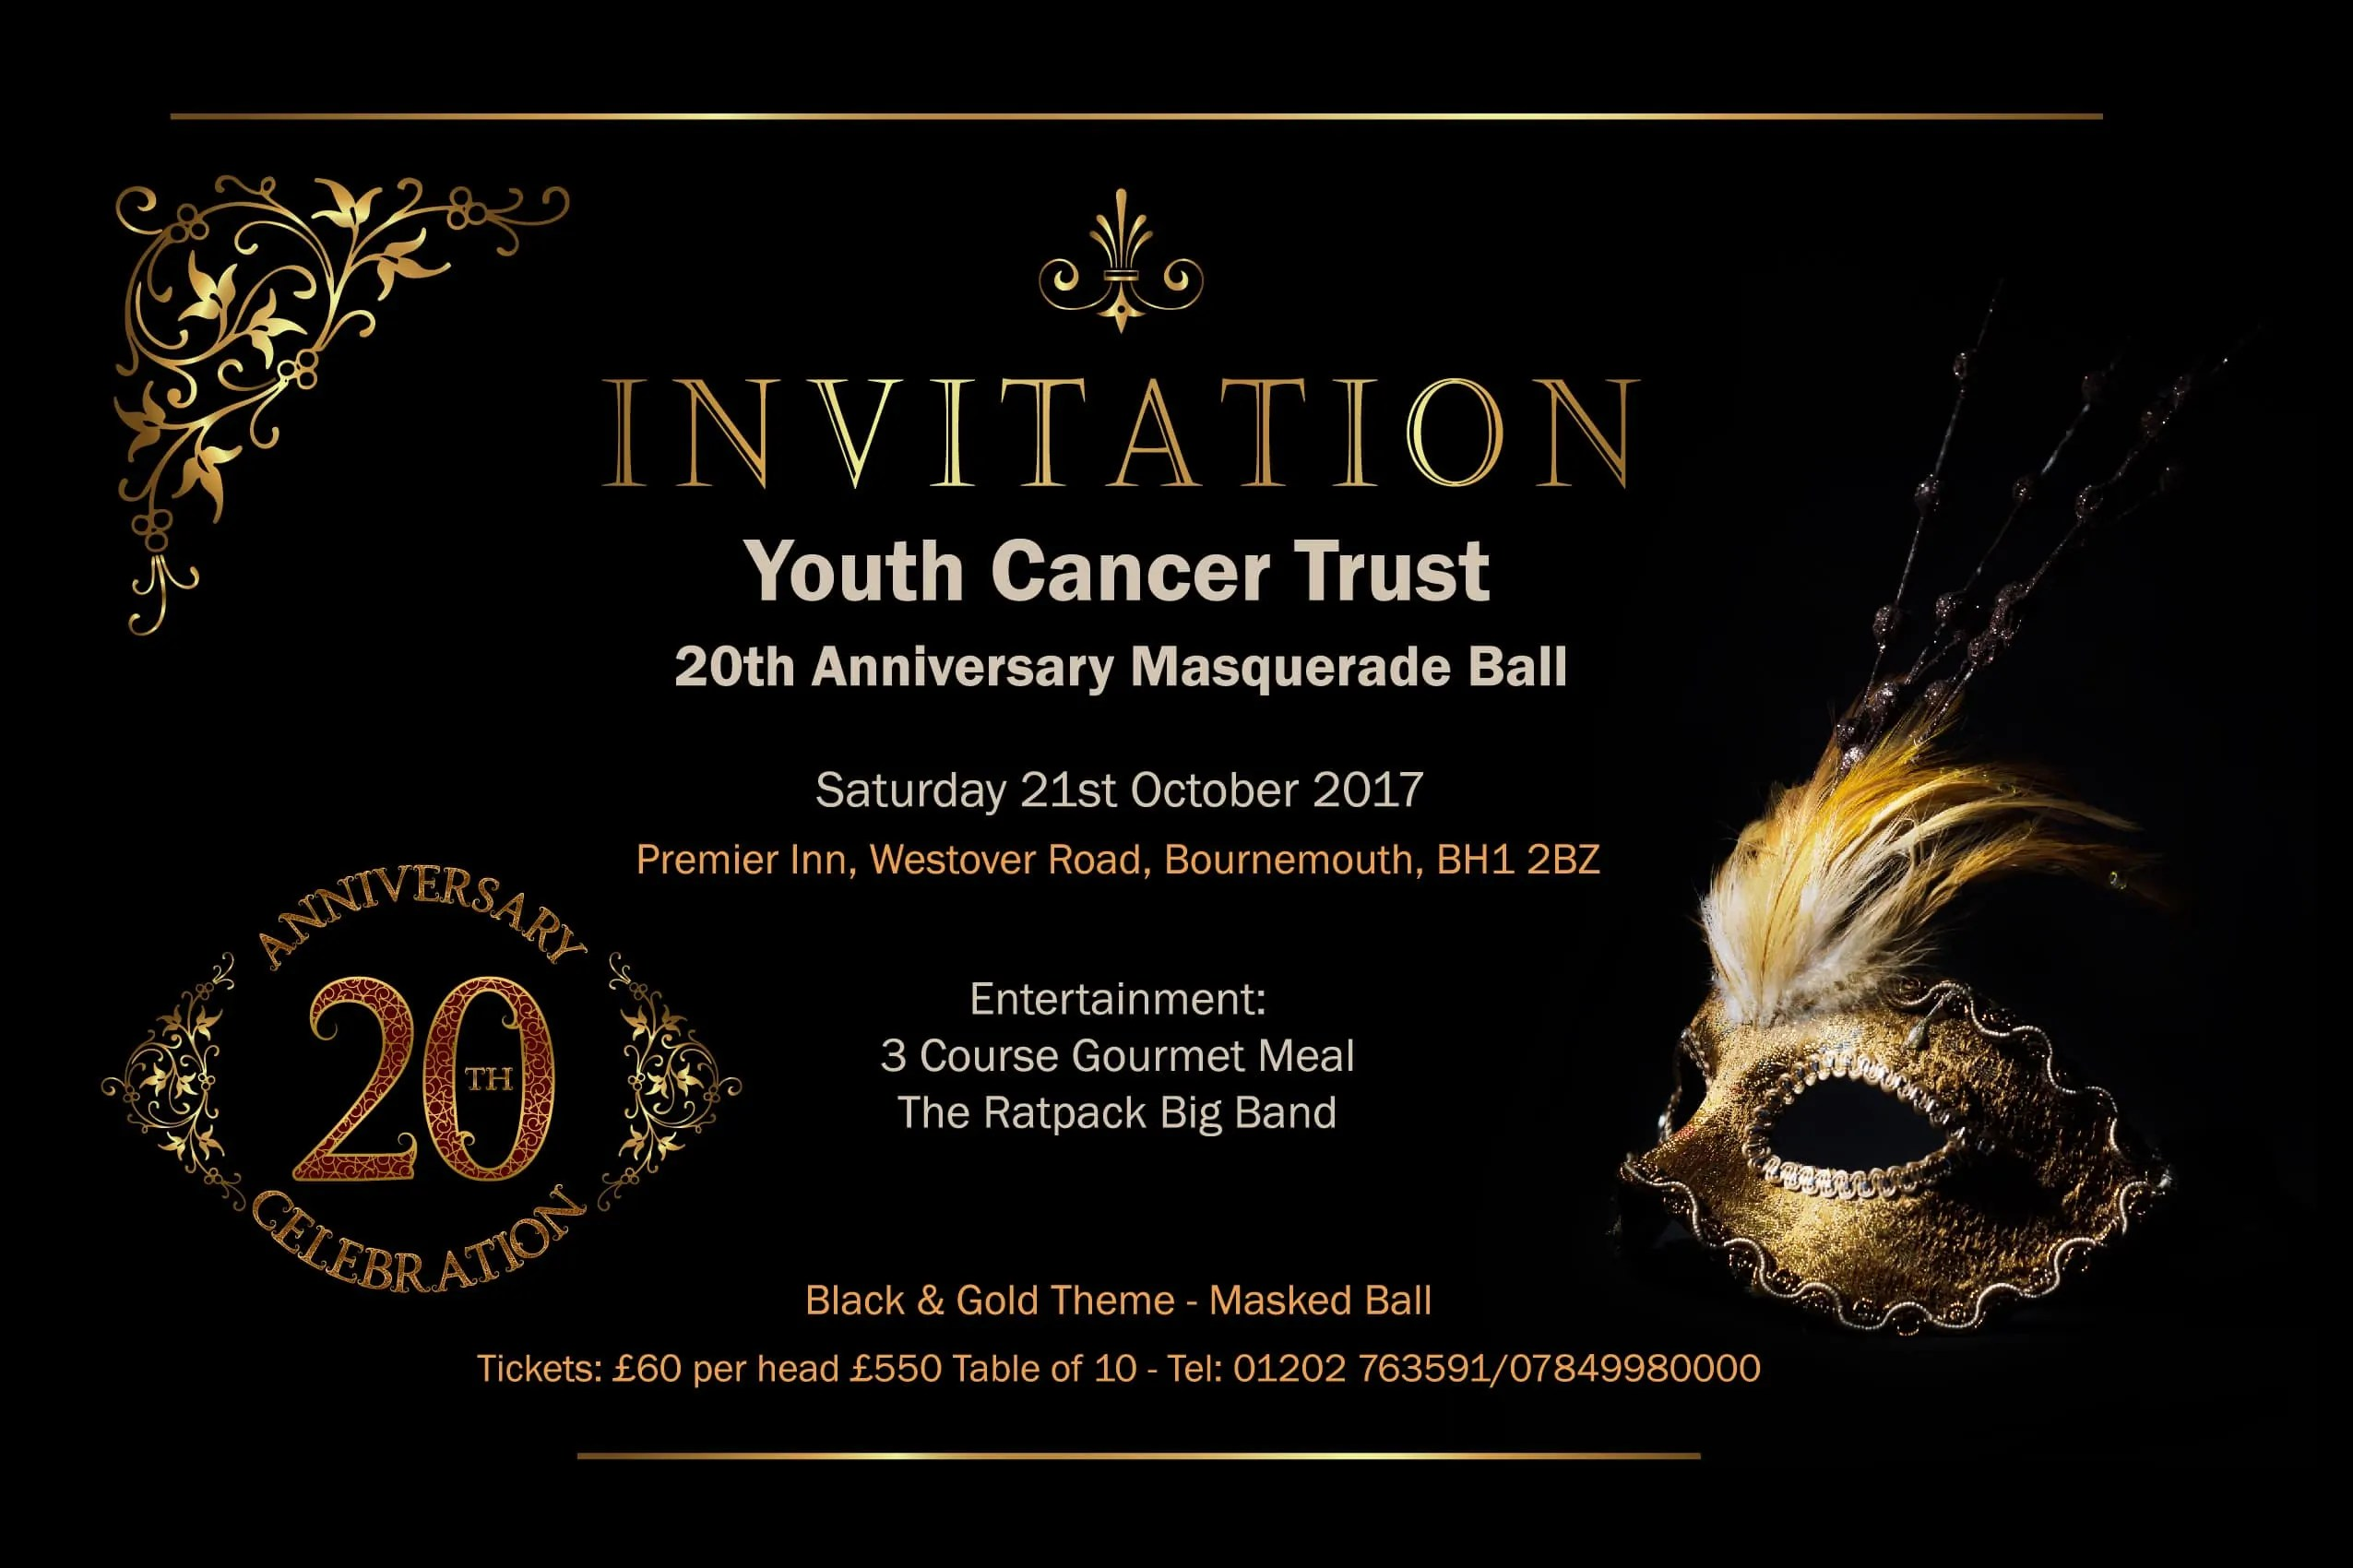 20th Anniversary Masquerade Ball Youth Cancer Trust